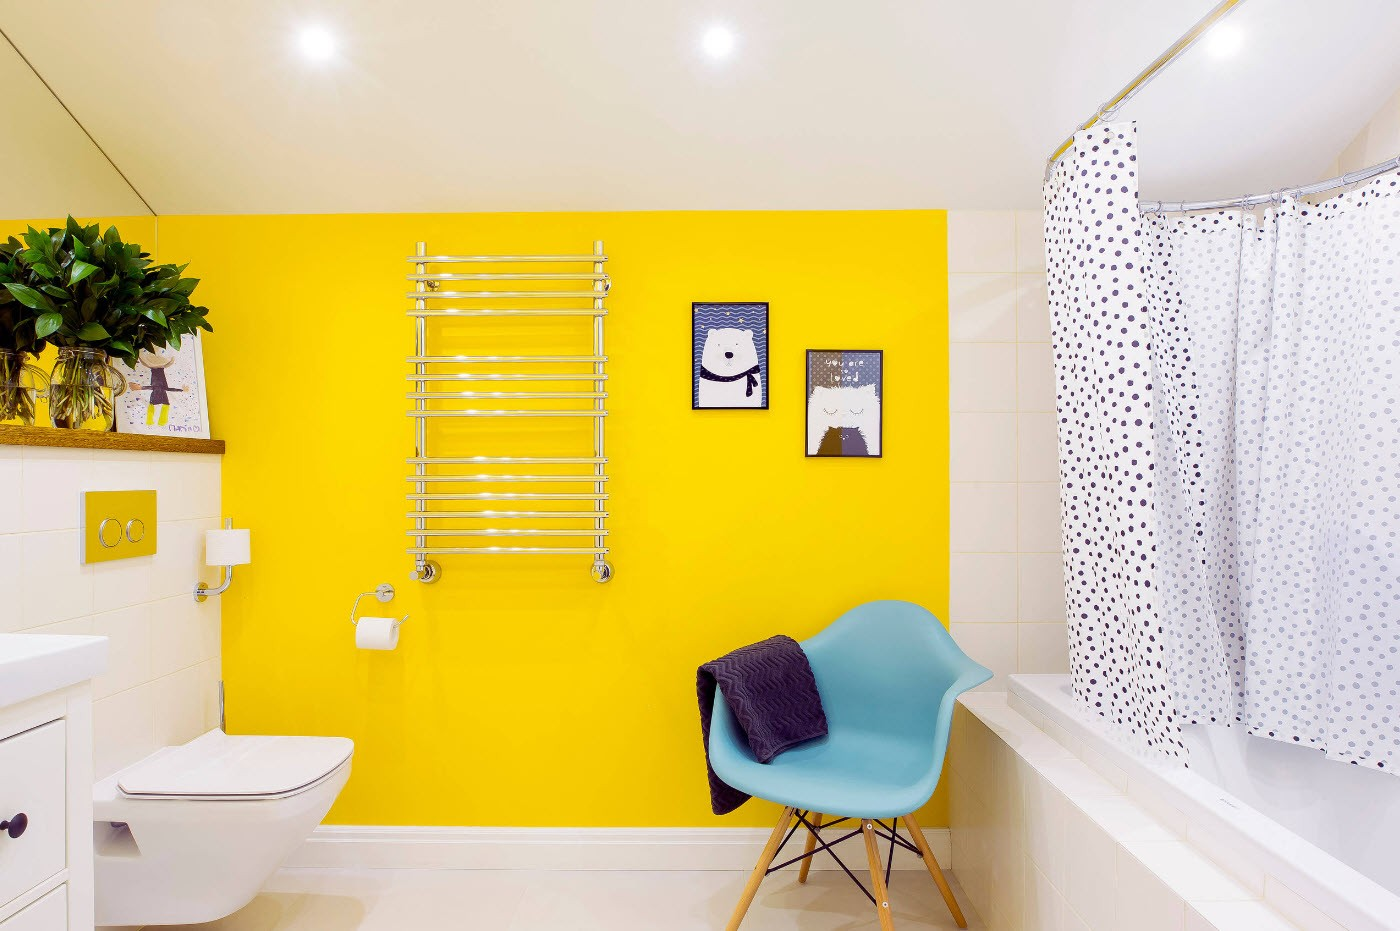 White modern bathroom with bright yellow accent wall